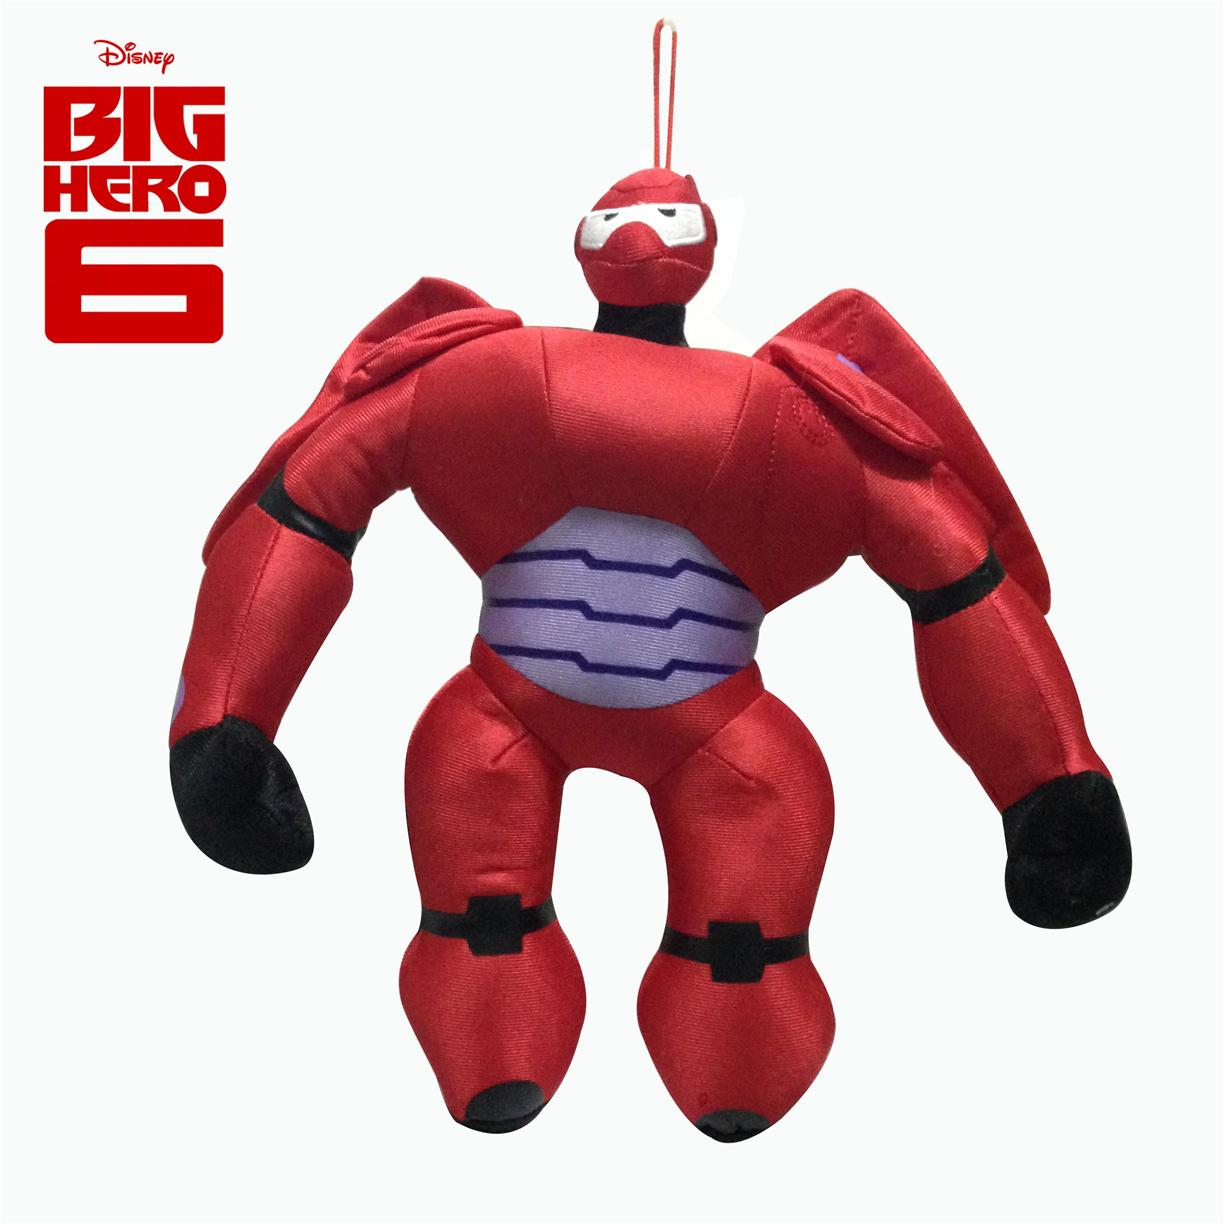 BIG HERO 6 BAYMAX Mech Plush Soft Toys